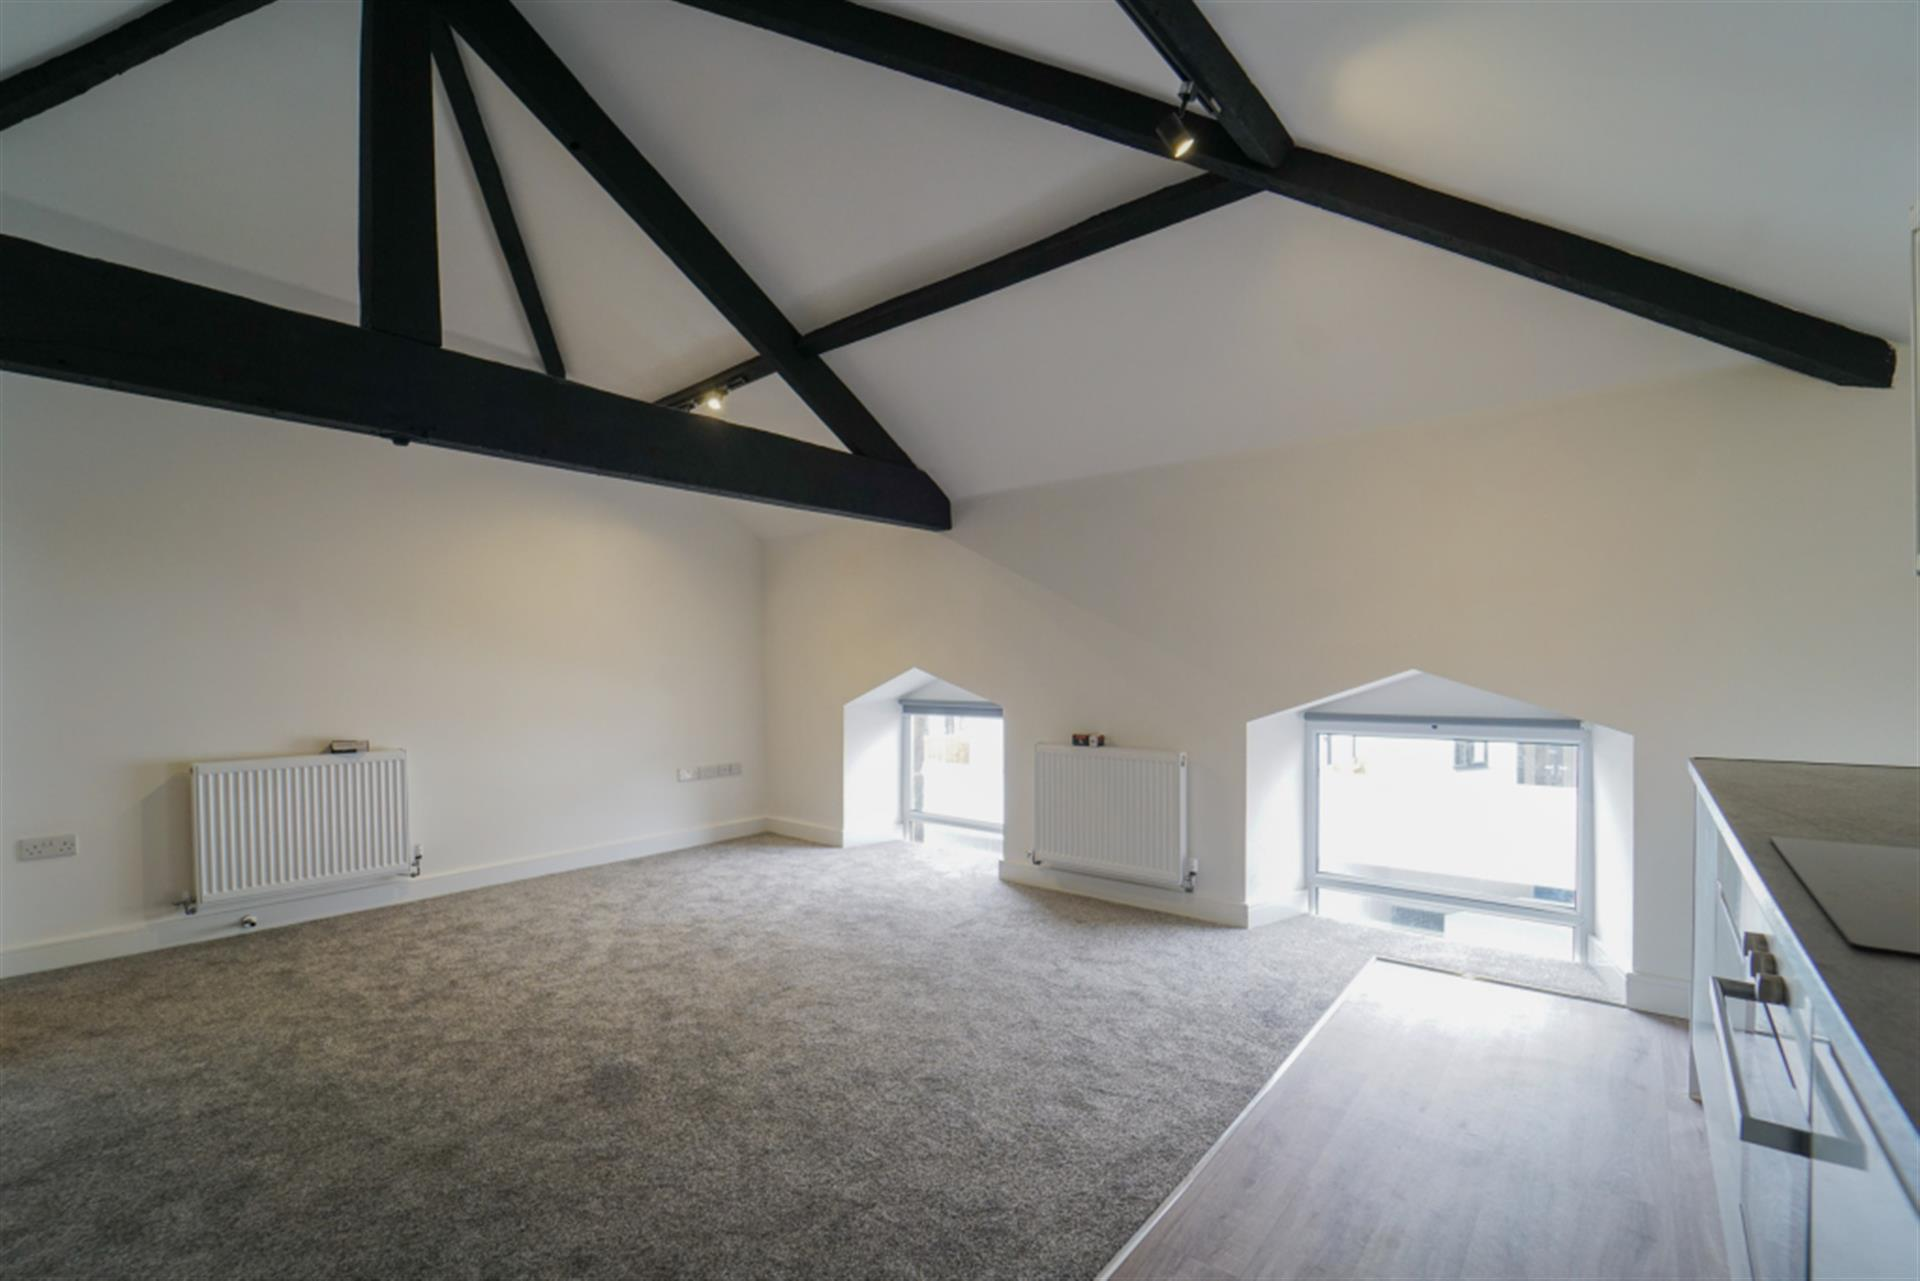 3 bedroom apartment flat / apartment To Let in 96 Watery Lane, Whitehall, Darwen, Lancs - Property photograph